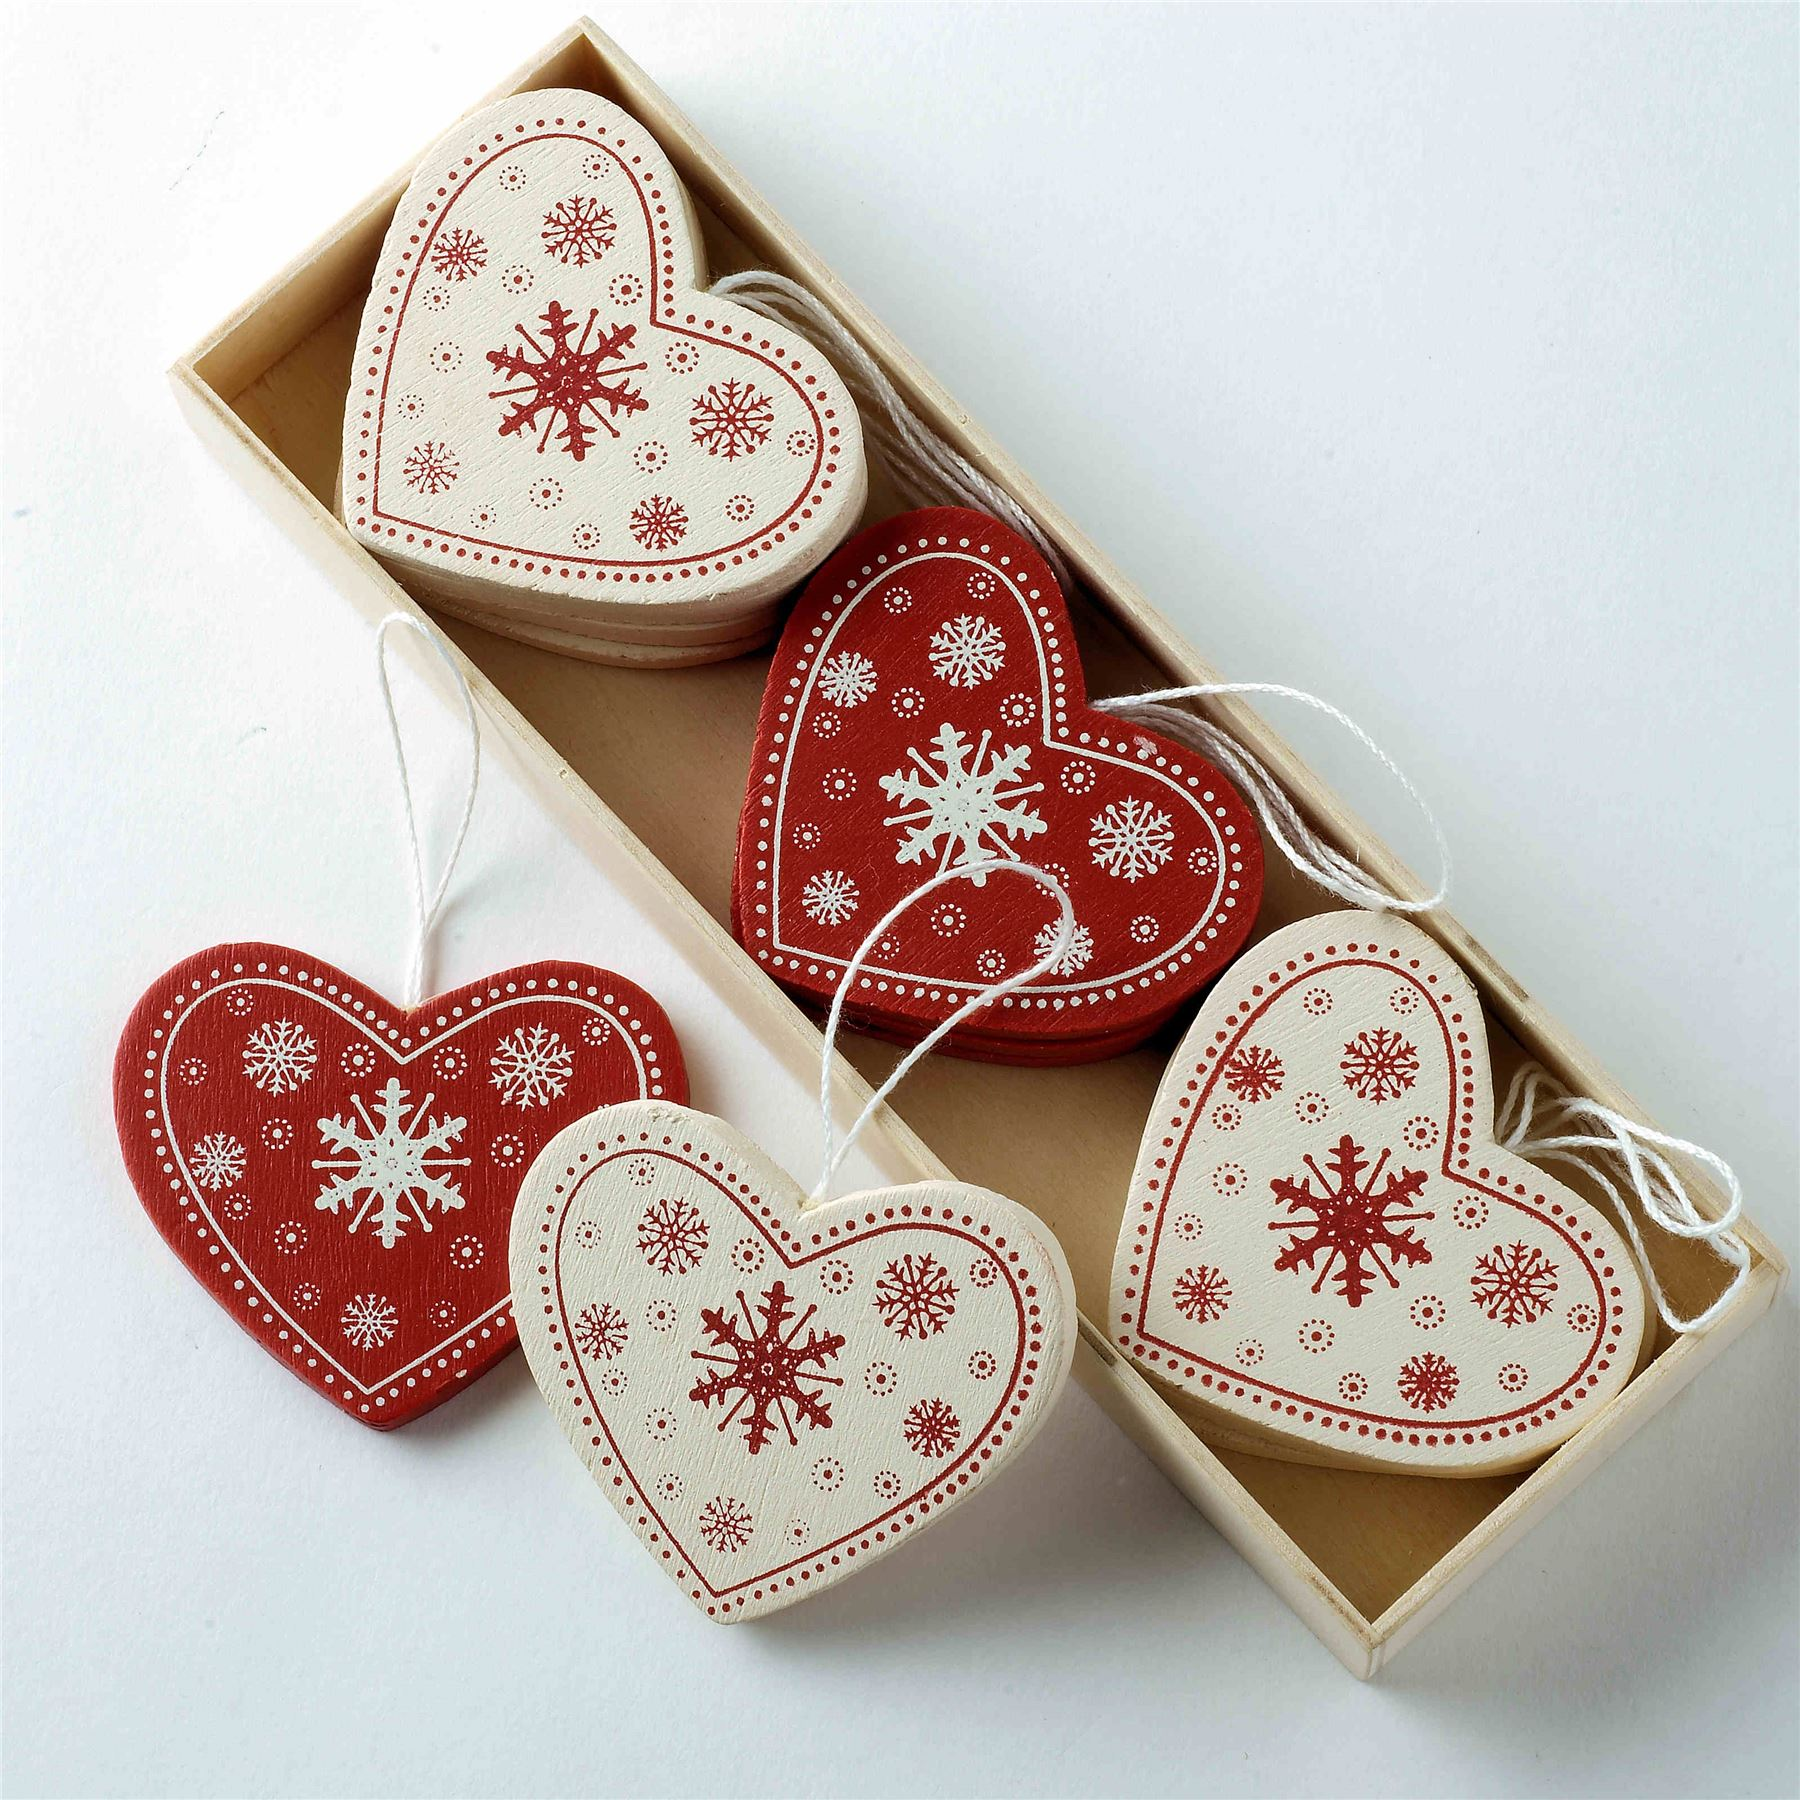 Nordic christmas ornaments - Scandi Nordic Christmas Decorations Wooden Fabric Red White